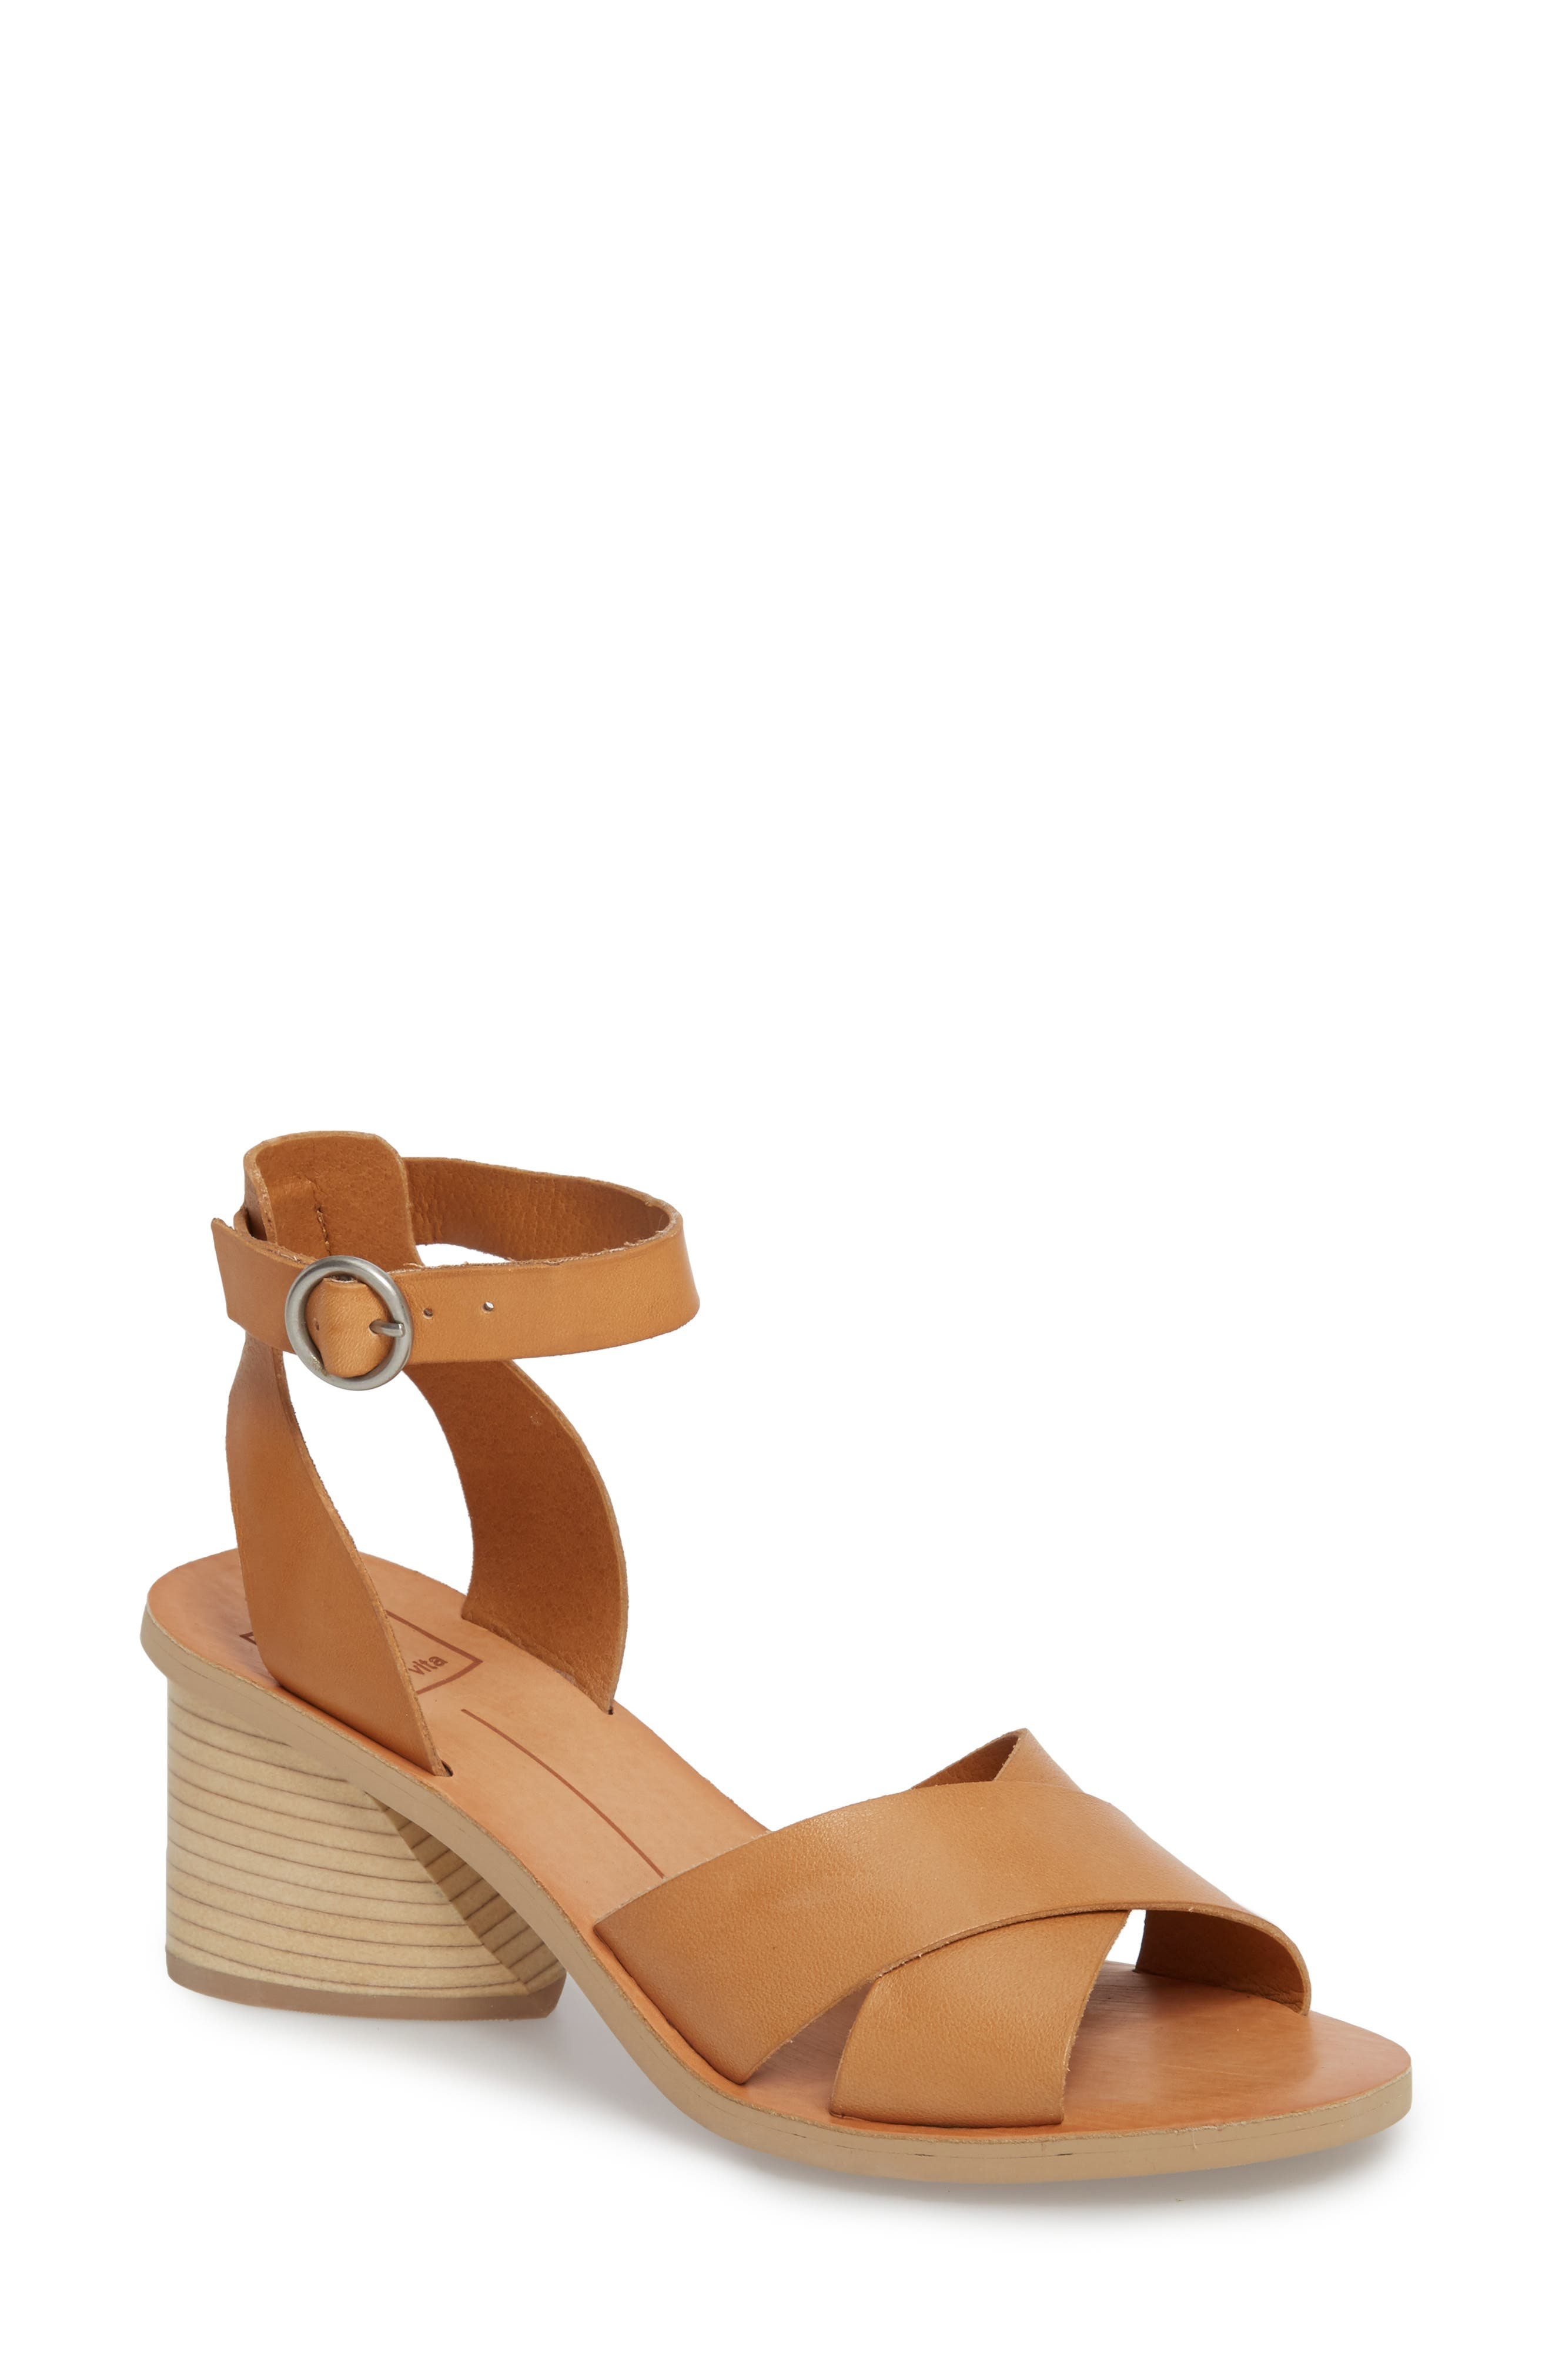 Roman Flared Heel Sandal,                             Main thumbnail 1, color,                             Caramel Leather